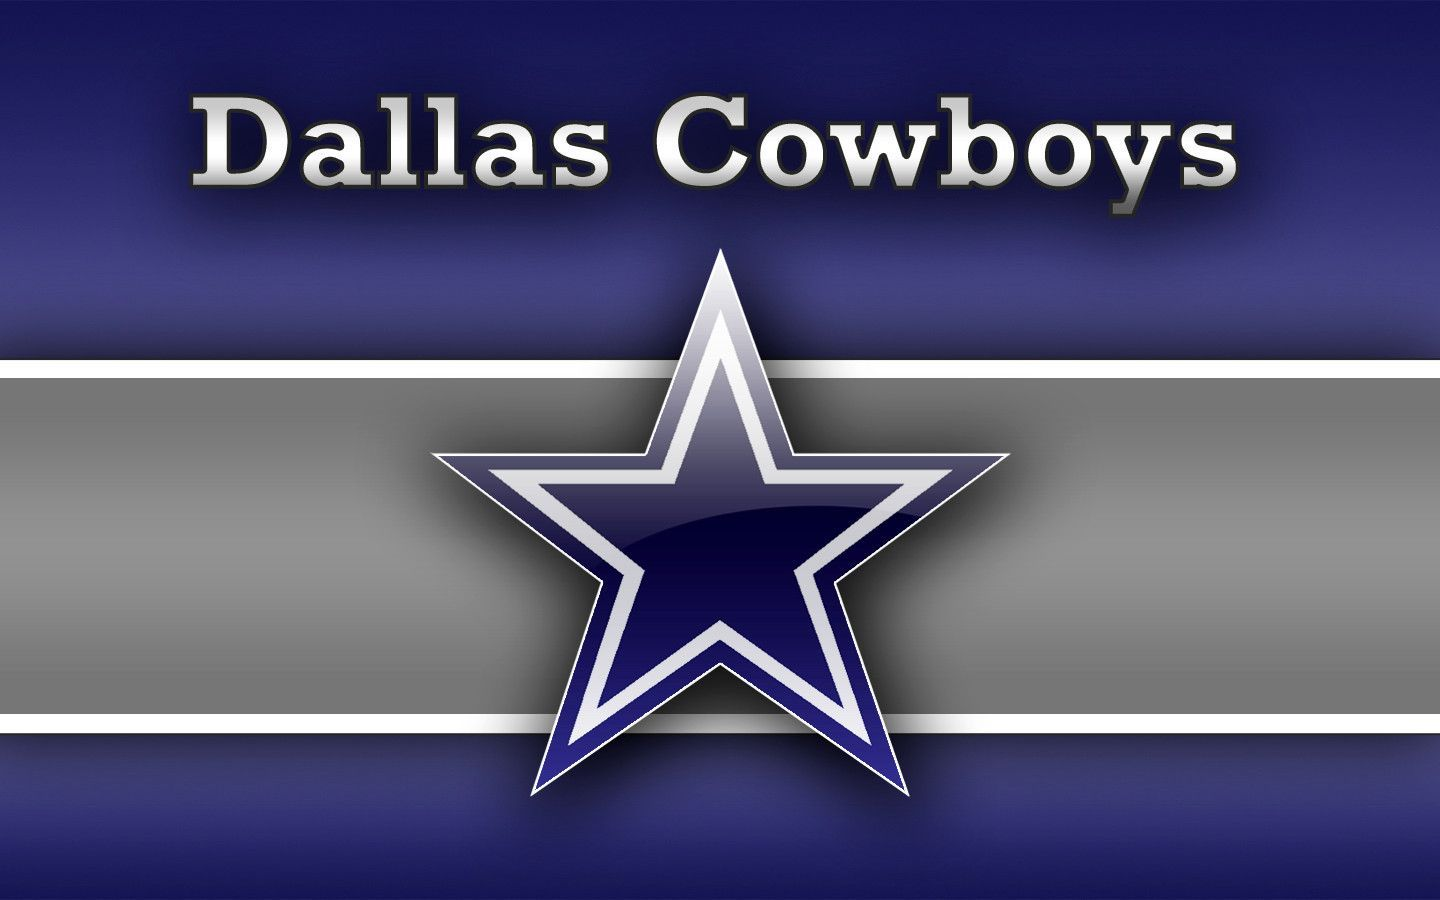 Cowboys-Top-Quality-Cool-Cowboys-wallpaper-wpc5803764